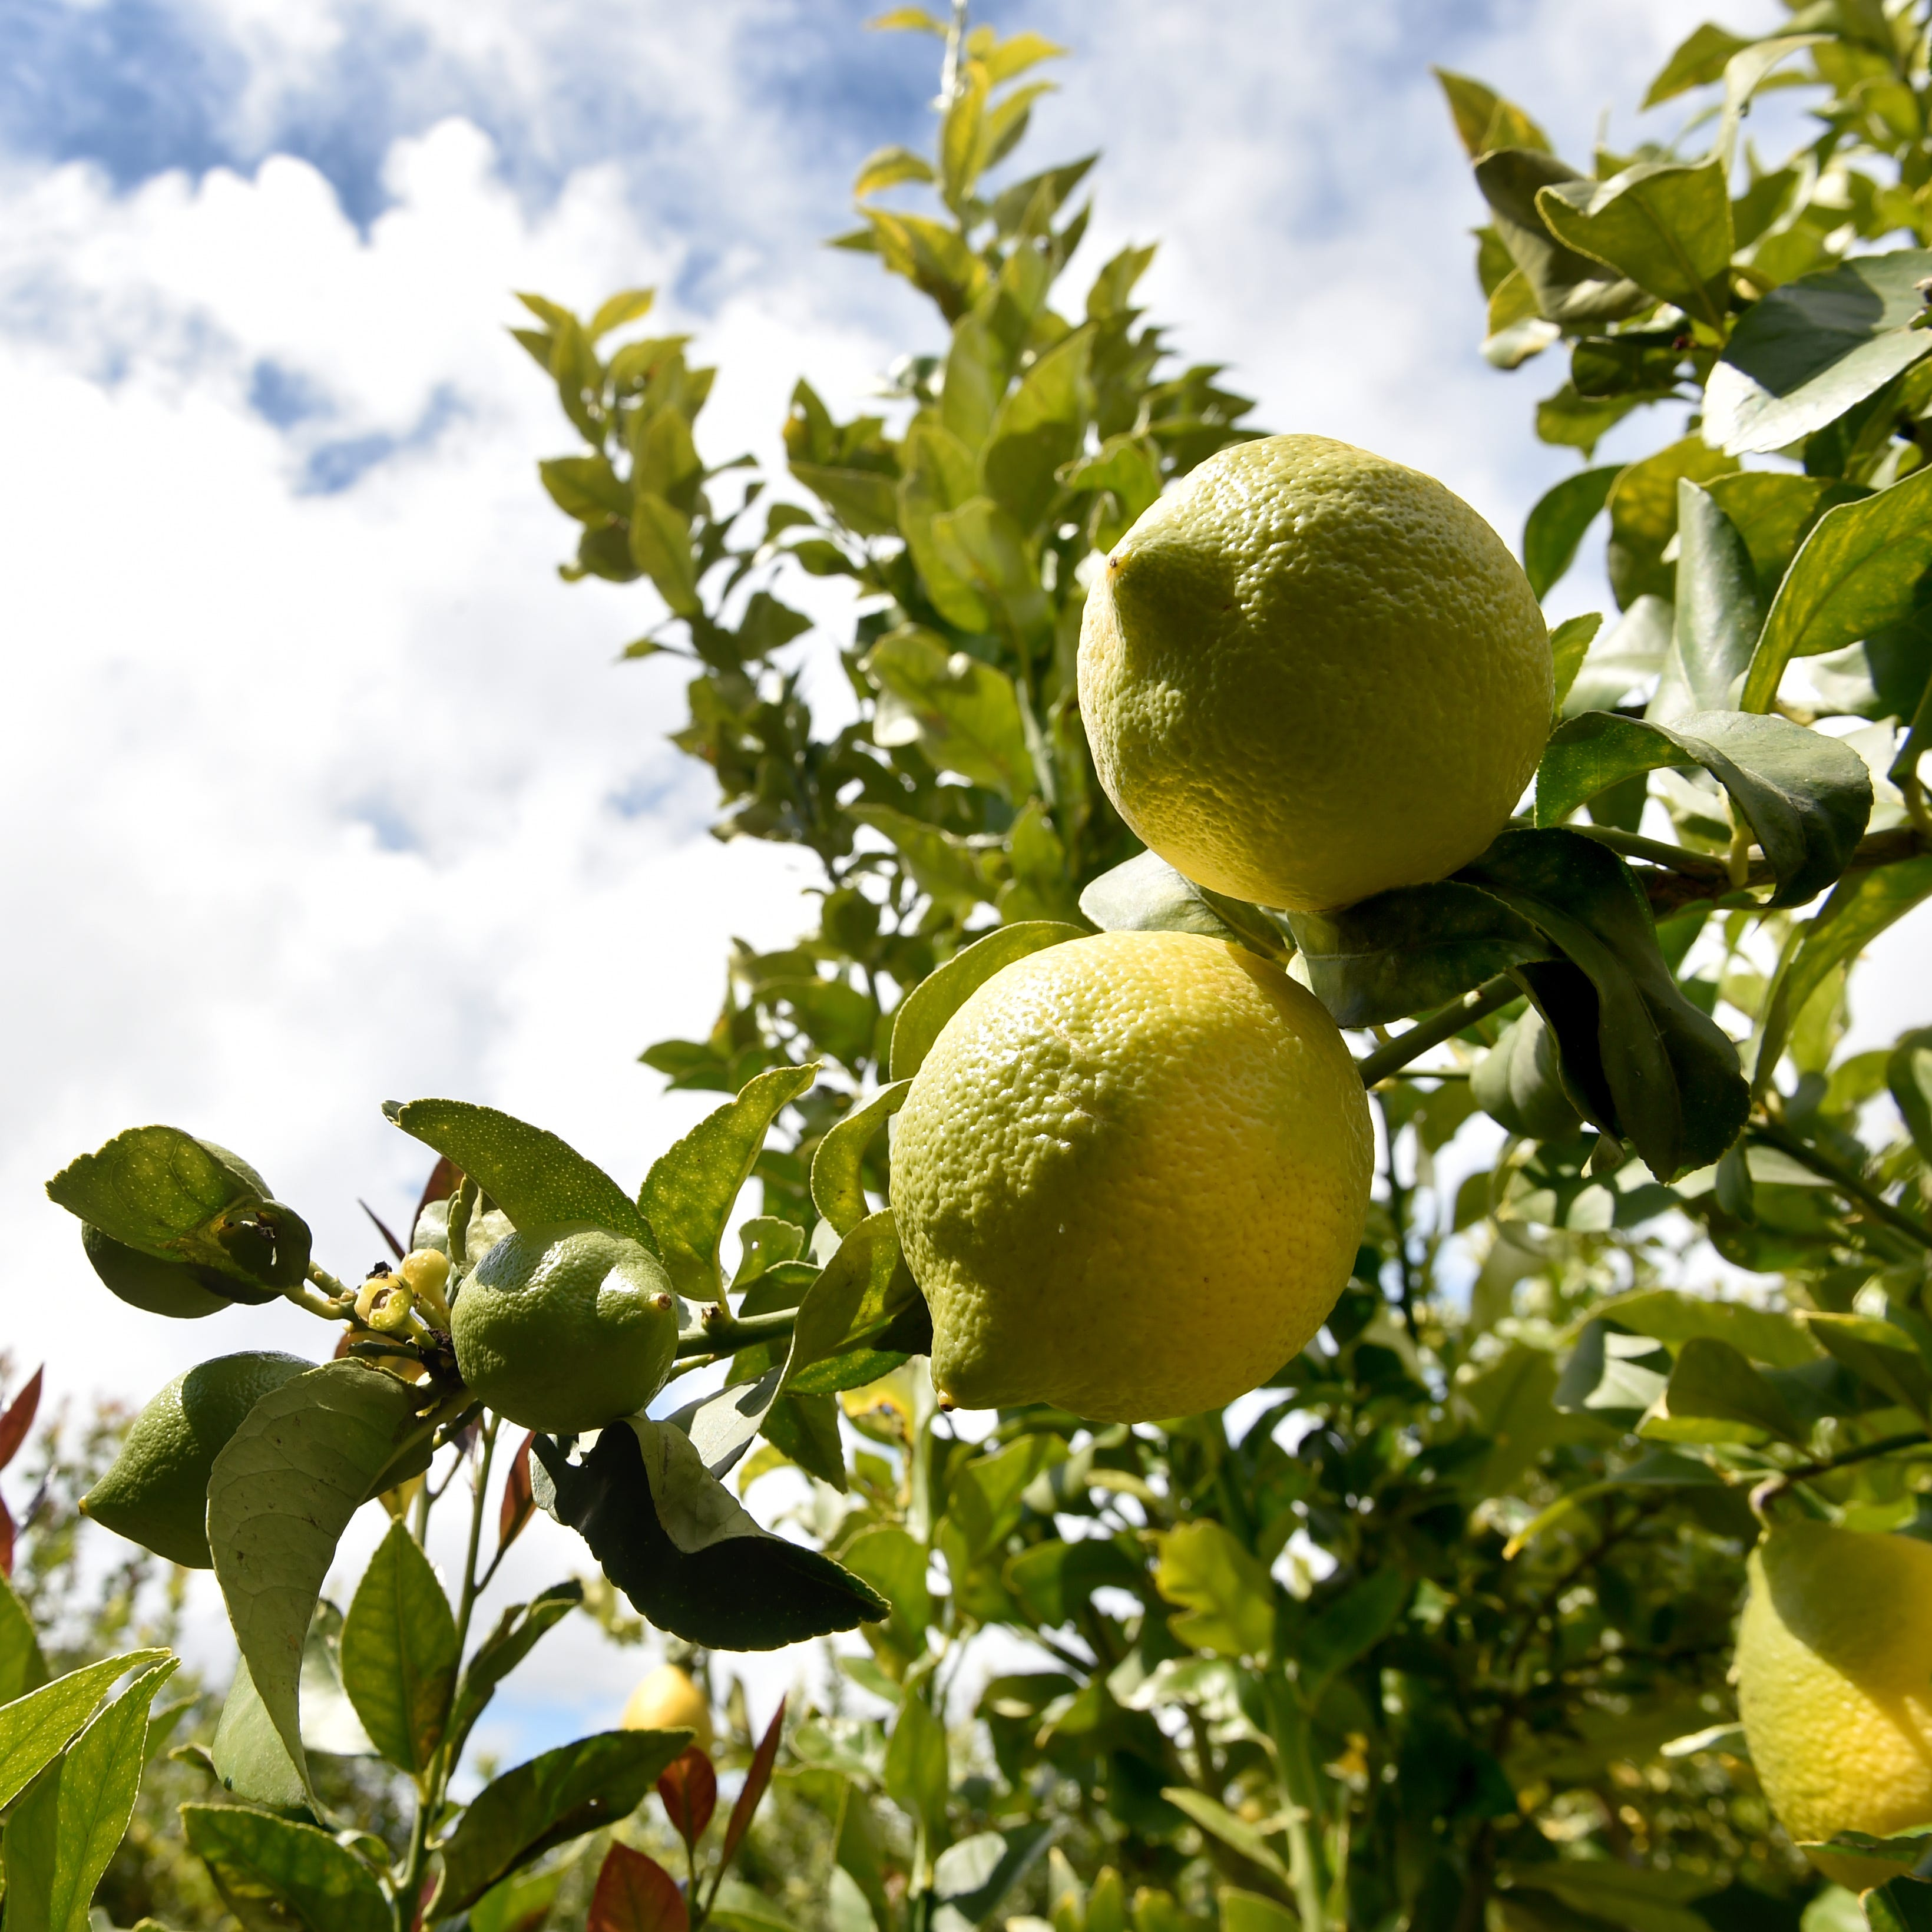 Growers fear deadly citrus disease is already in county